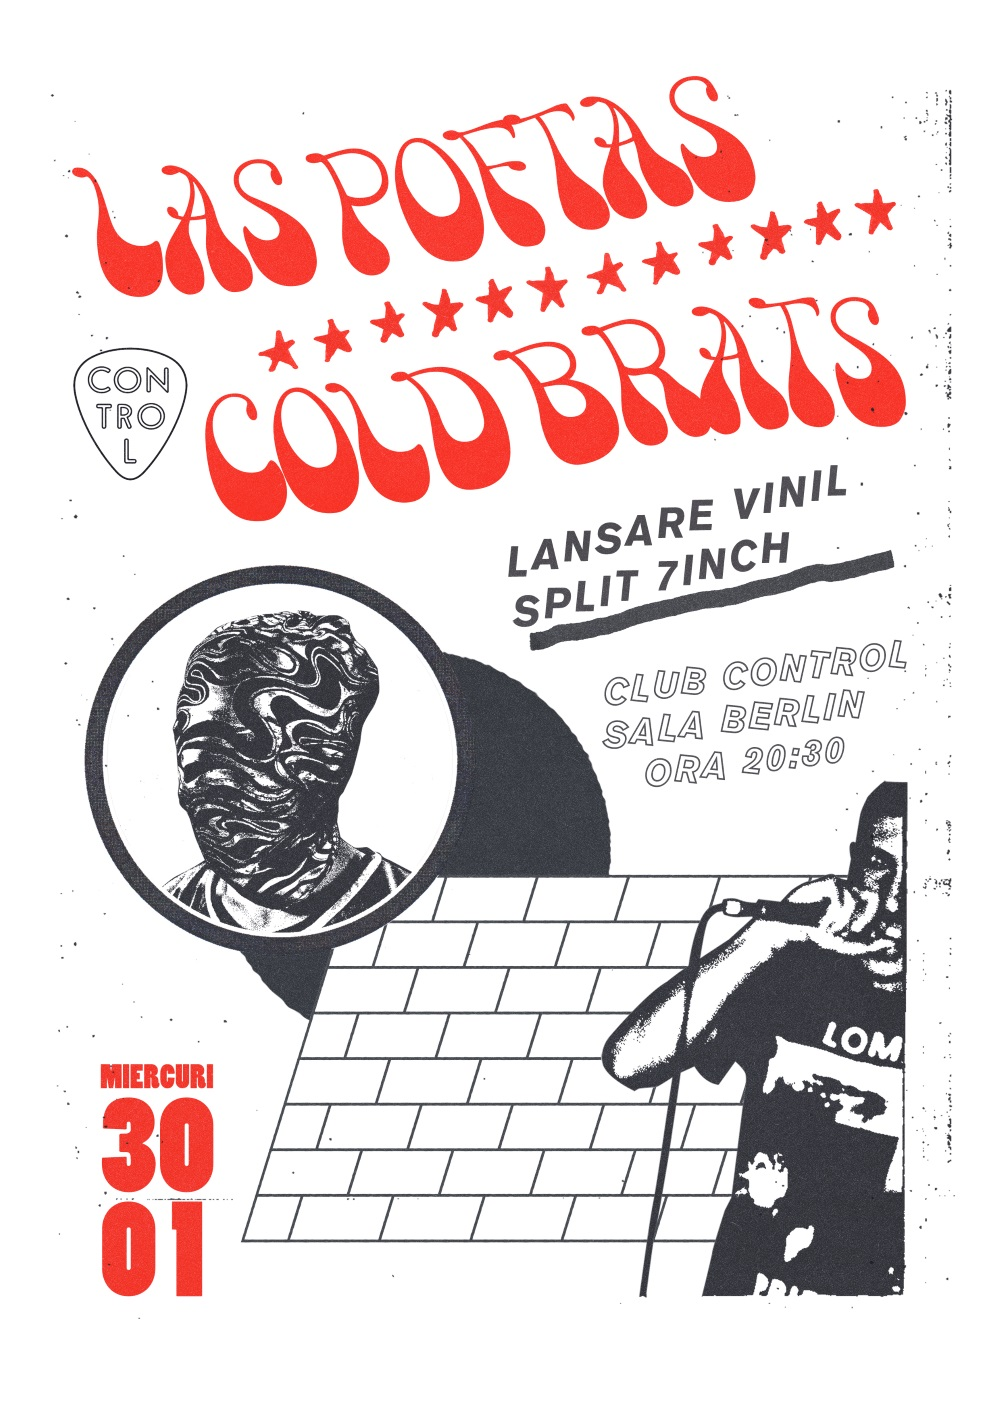 COLD BRATS release show